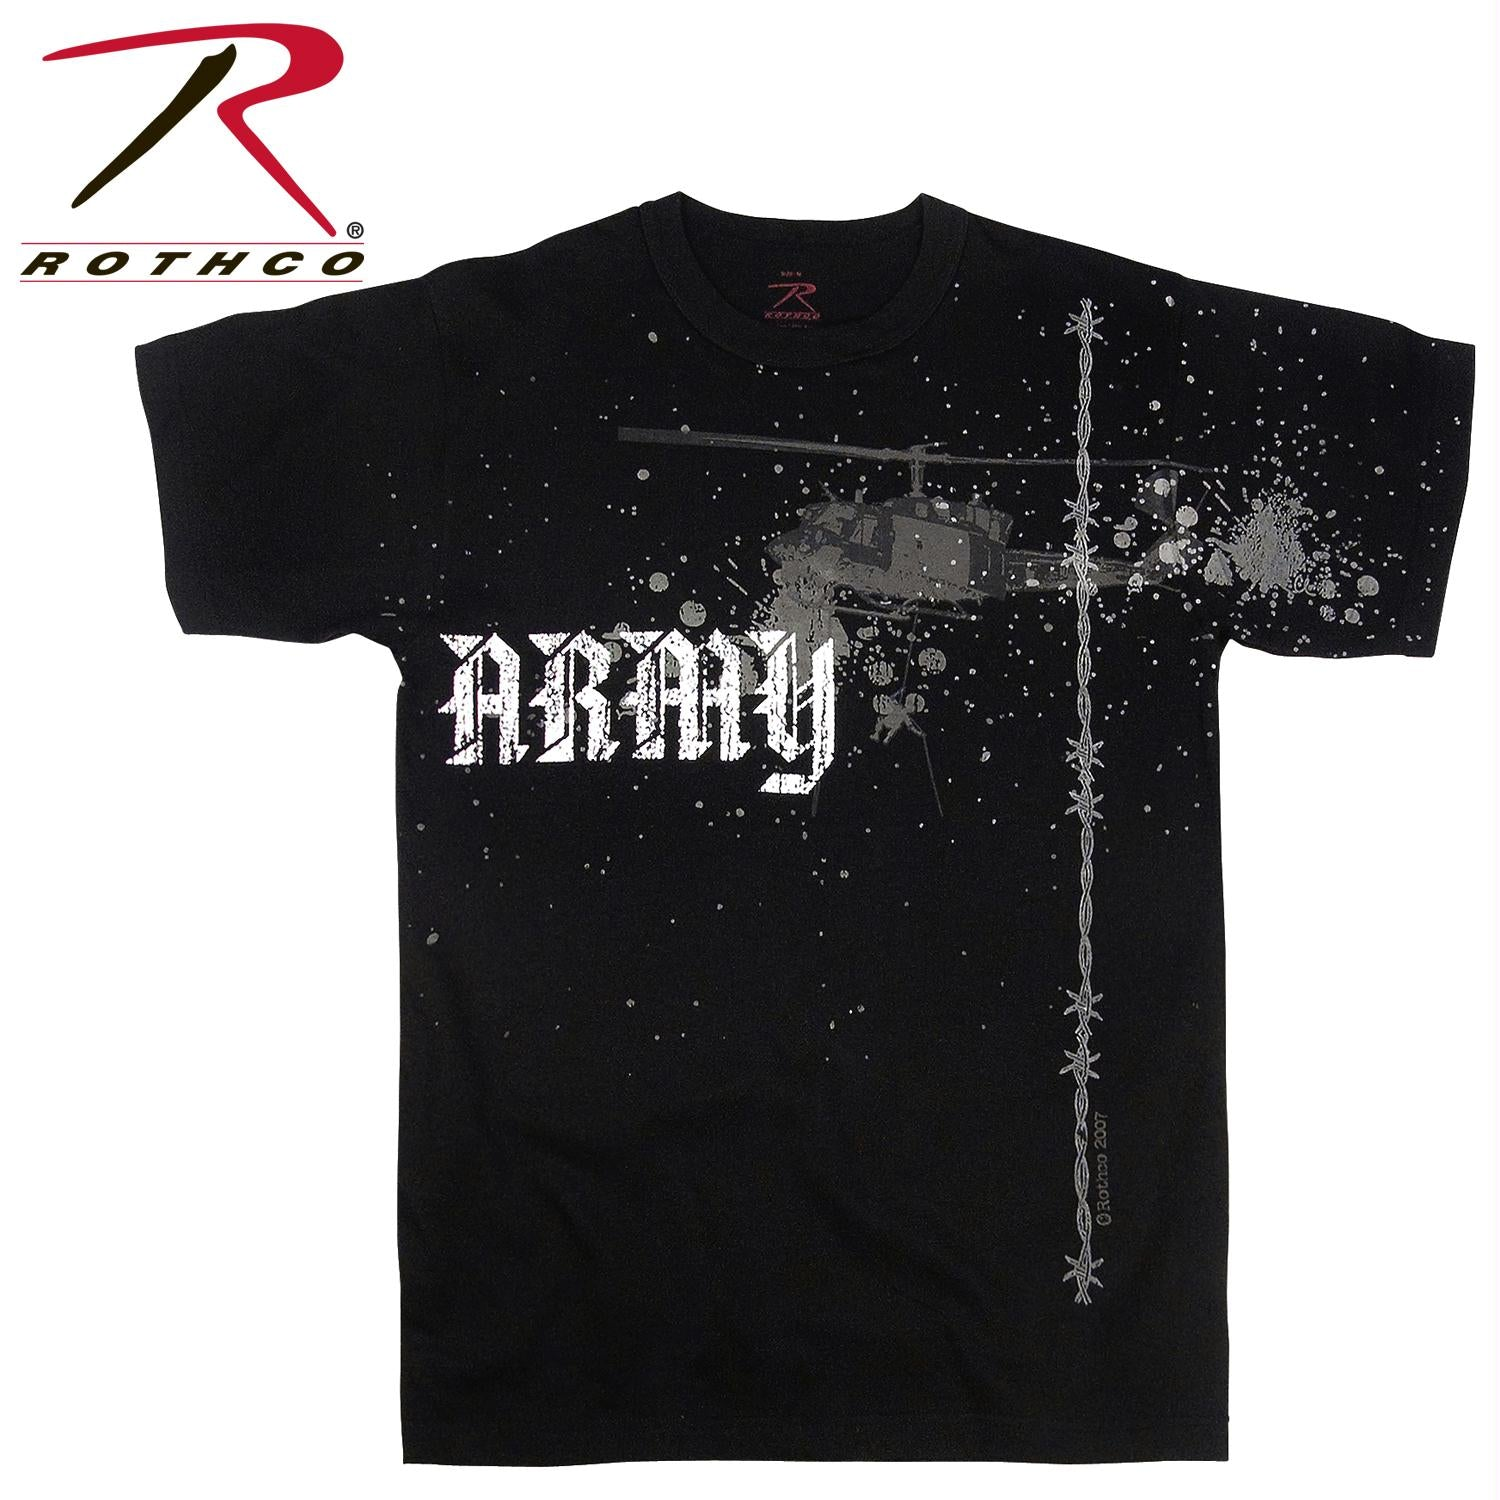 Rothco Vintage Army Helicopter T-Shirt - Black / XL